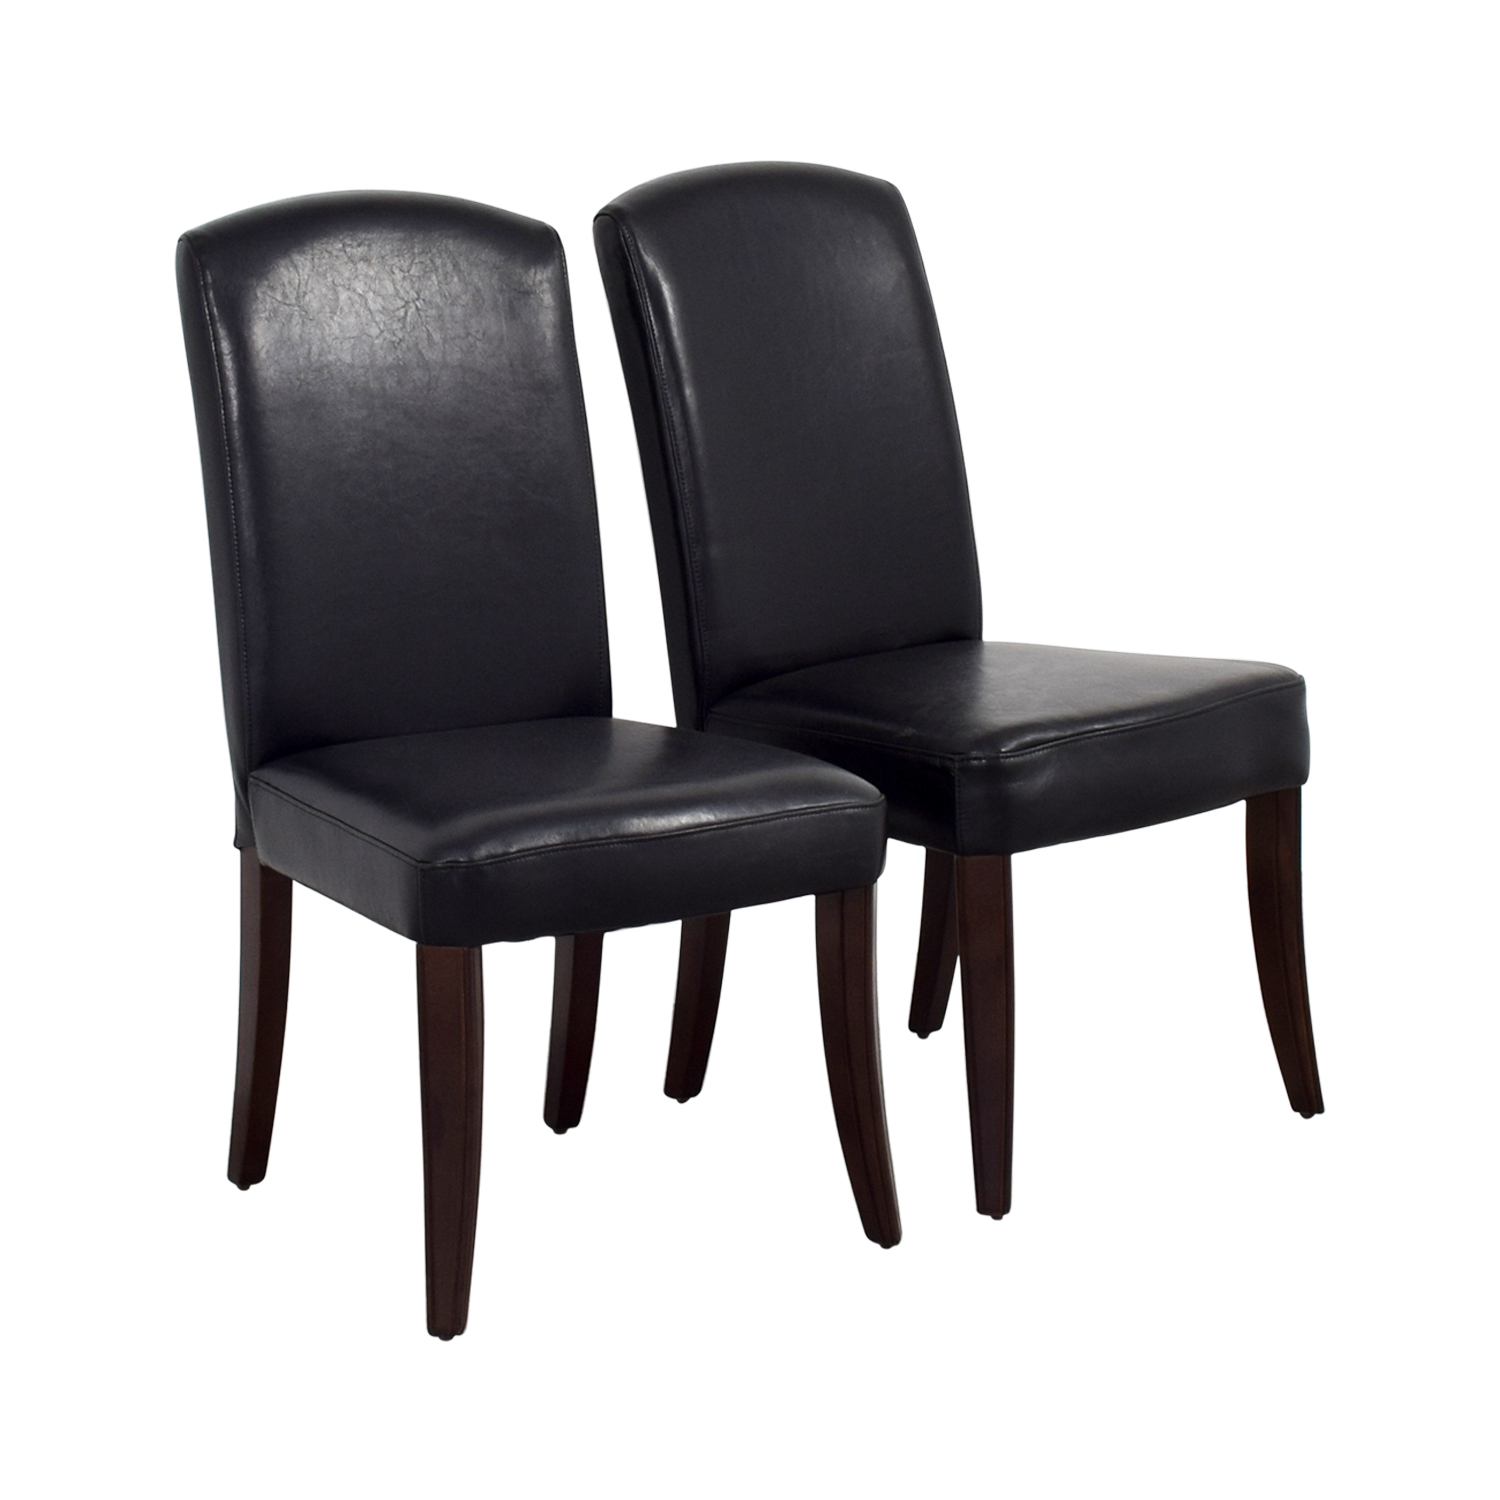 Black Padded Leatherette High Back Chairs dimensions